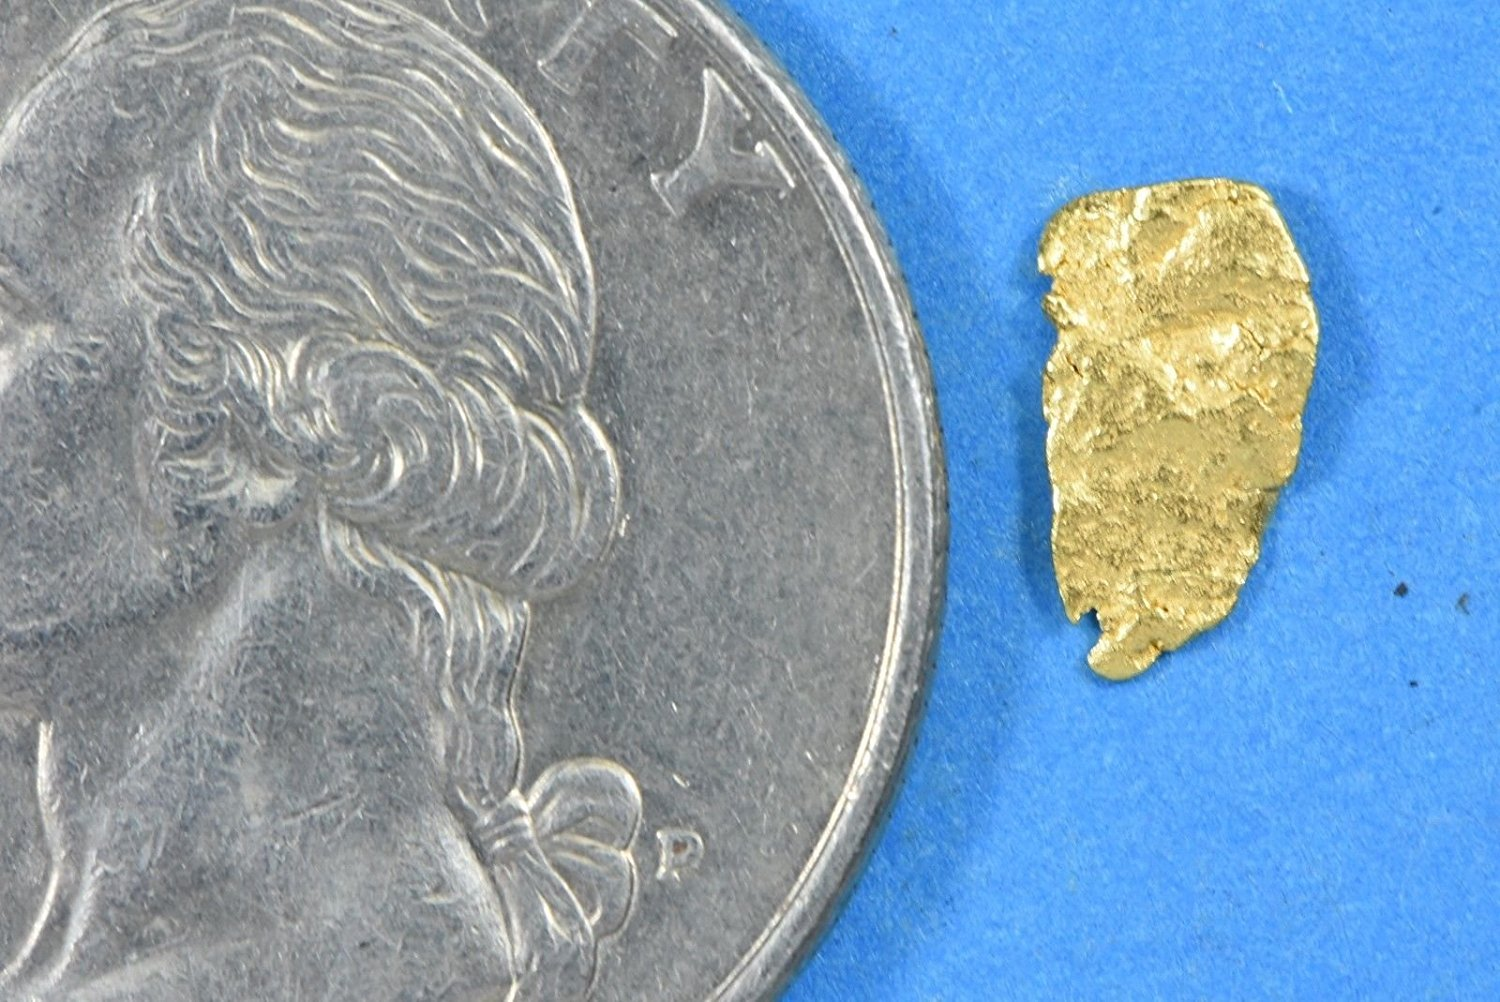 Alaskan-Yukon Bc Gold Rush Natural Nugget 0.12 Grams Genuine Alaska .10-.34